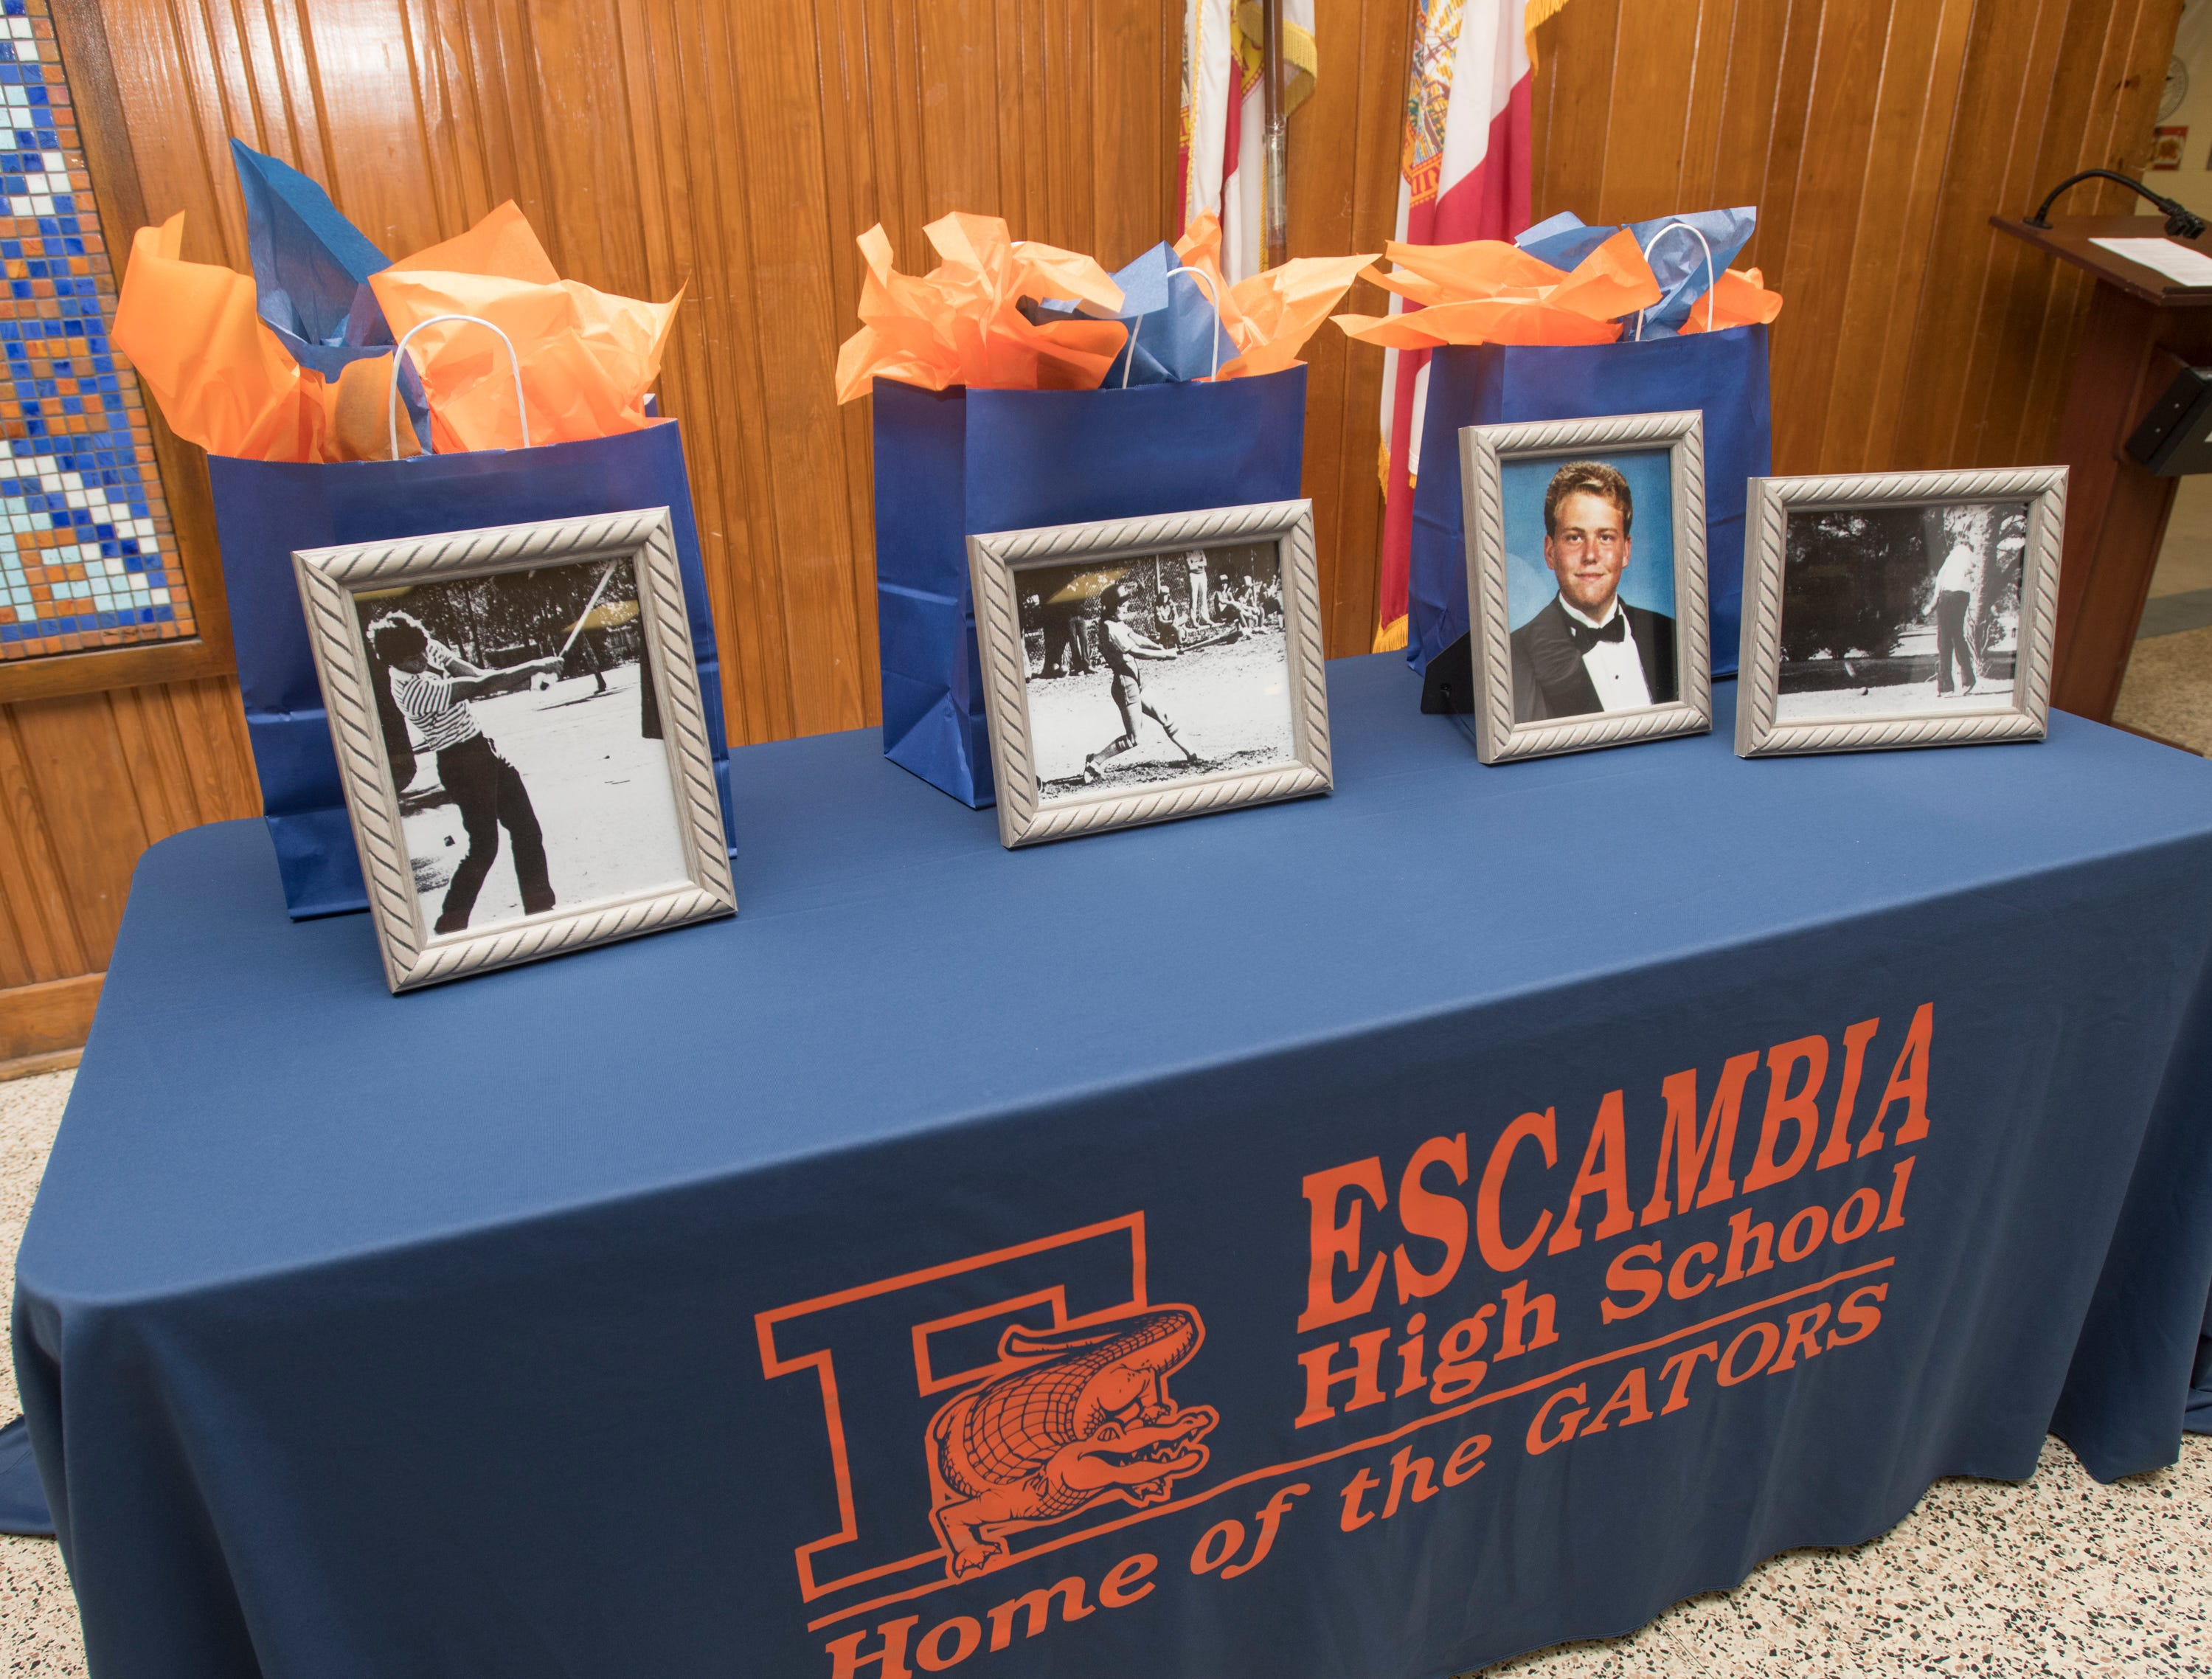 High school photos of Hall of Fame class of 2018-2019 inductees Joe Durant, from left, Cheryl Peters, and Marty Stanovich are displayed at Escambia High School in Pensacola on March 14, 2019.